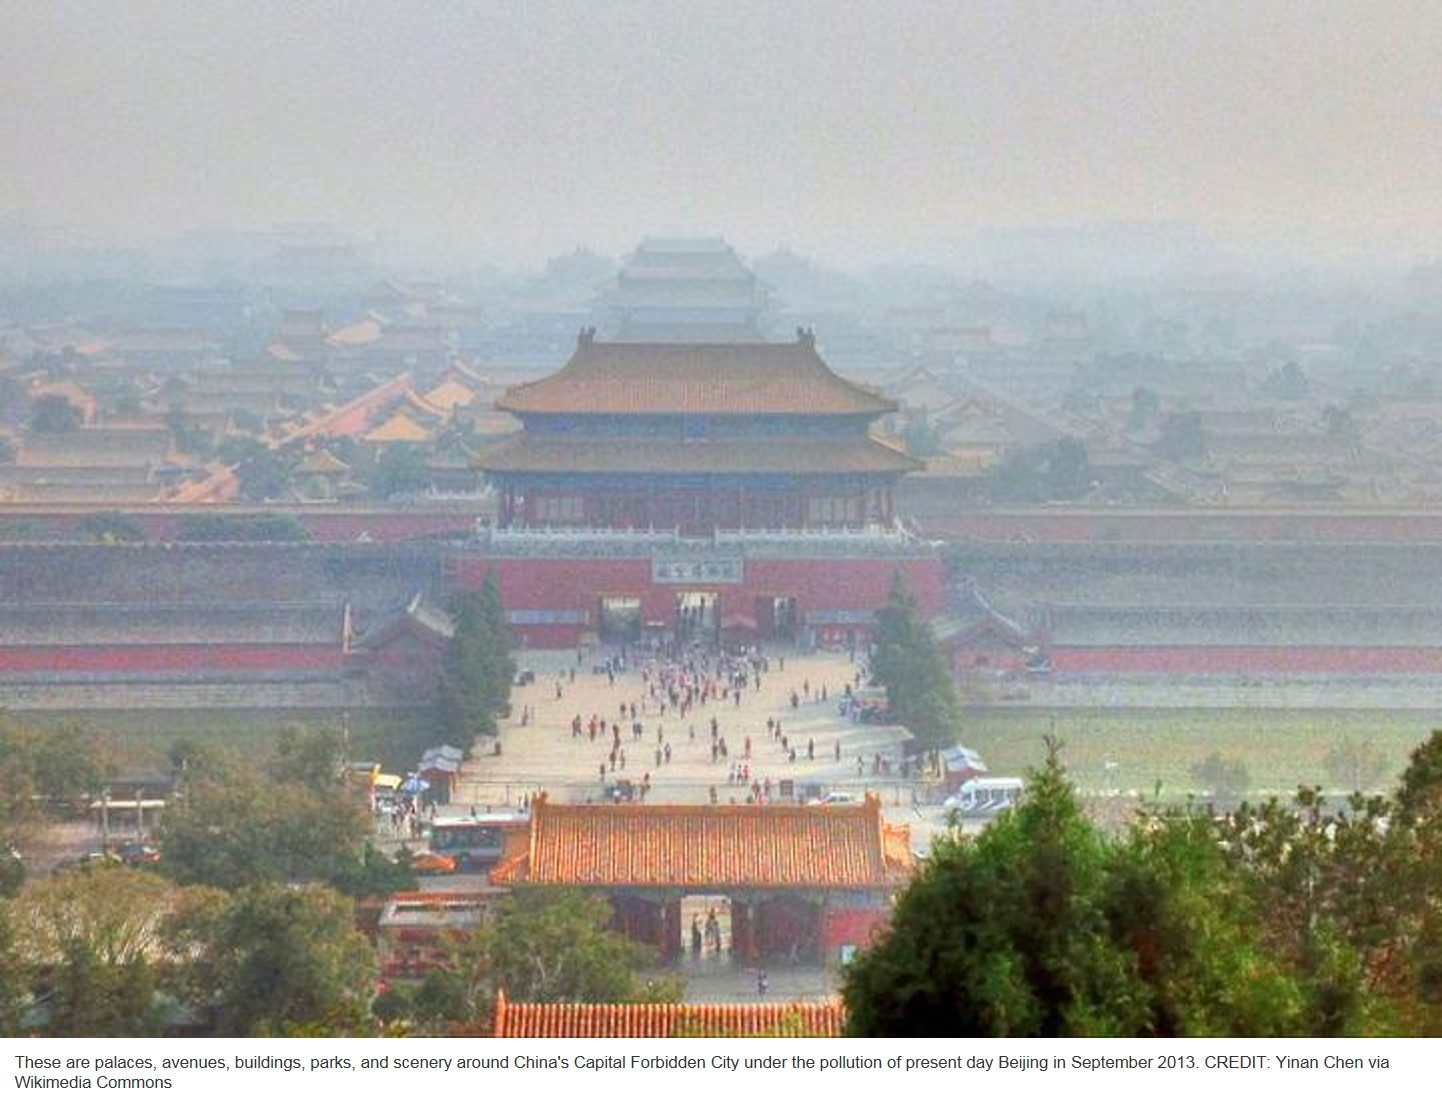 Exposure to air pollution increases the risk of obesity